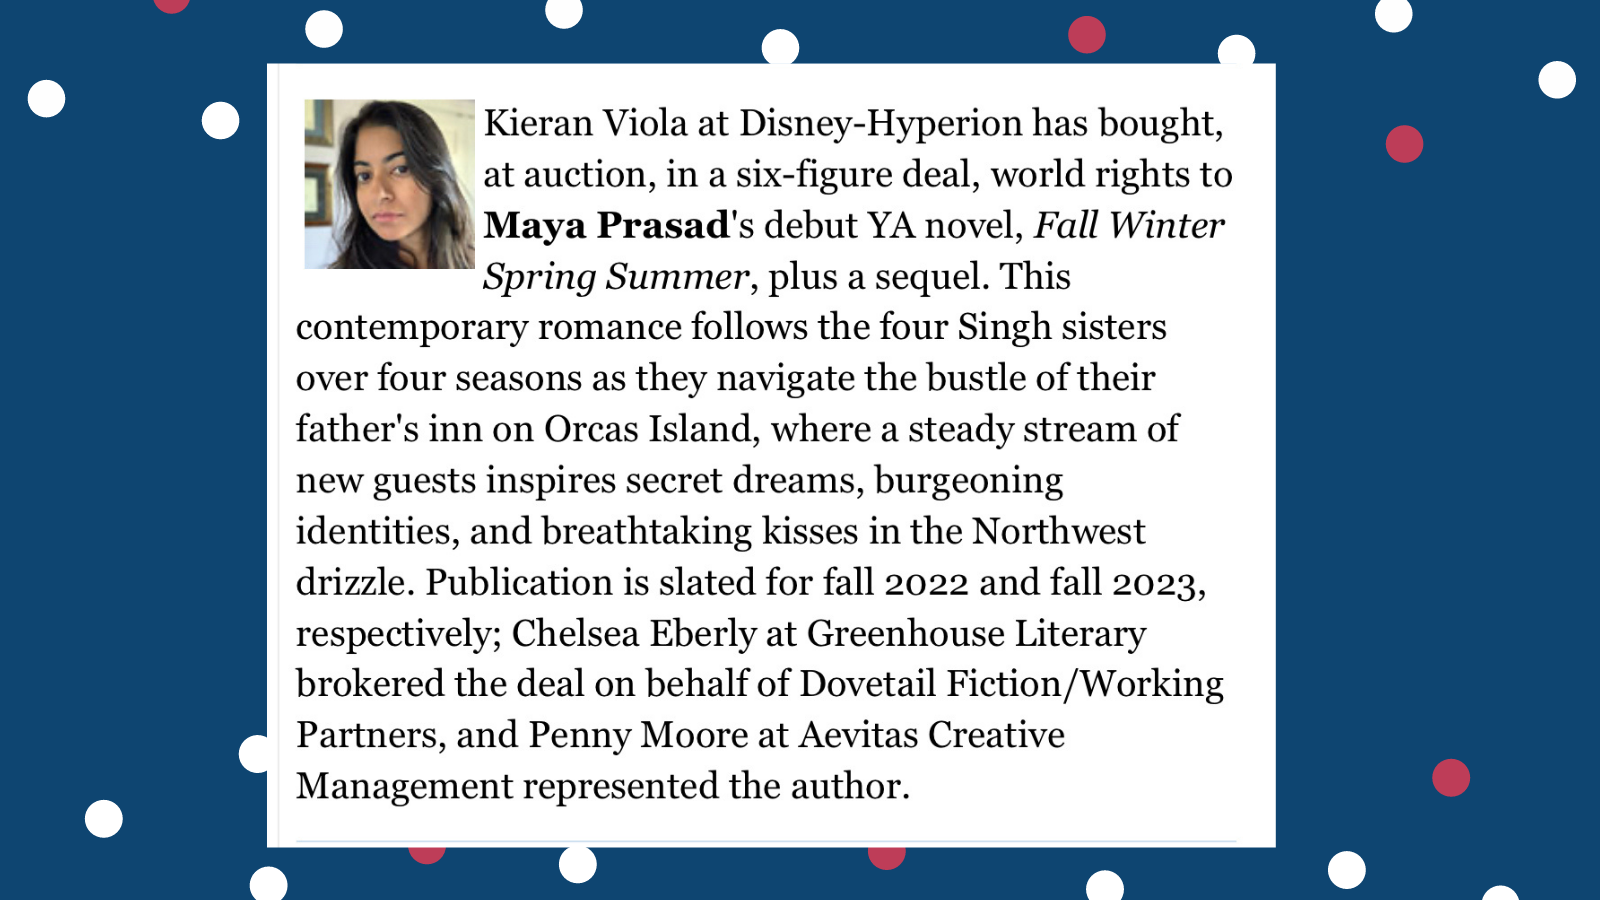 Kieran Viola at Disney-Hyperion has bought, at auction, in a six-figure deal, world rights to Maya Prasad's debut YA novel, Fall Winter Spring Summer, plus a sequel. This contemporary romance follows the four Singh sisters over four seasons as they navigate the bustle of their father's inn on Orcas Island, where a steady stream of new guests inspires secret dreams, burgeoning identities, and breathtaking kisses in the Northwest drizzle. Publication is slated for fall 2022 and fall 2023, respectively; Chelsea Eberly at Greenhouse Literary brokered the deal on behalf of Dovetail Fiction/Working Partners, and Penny Moore at Aevitas Creative Management represented the author.